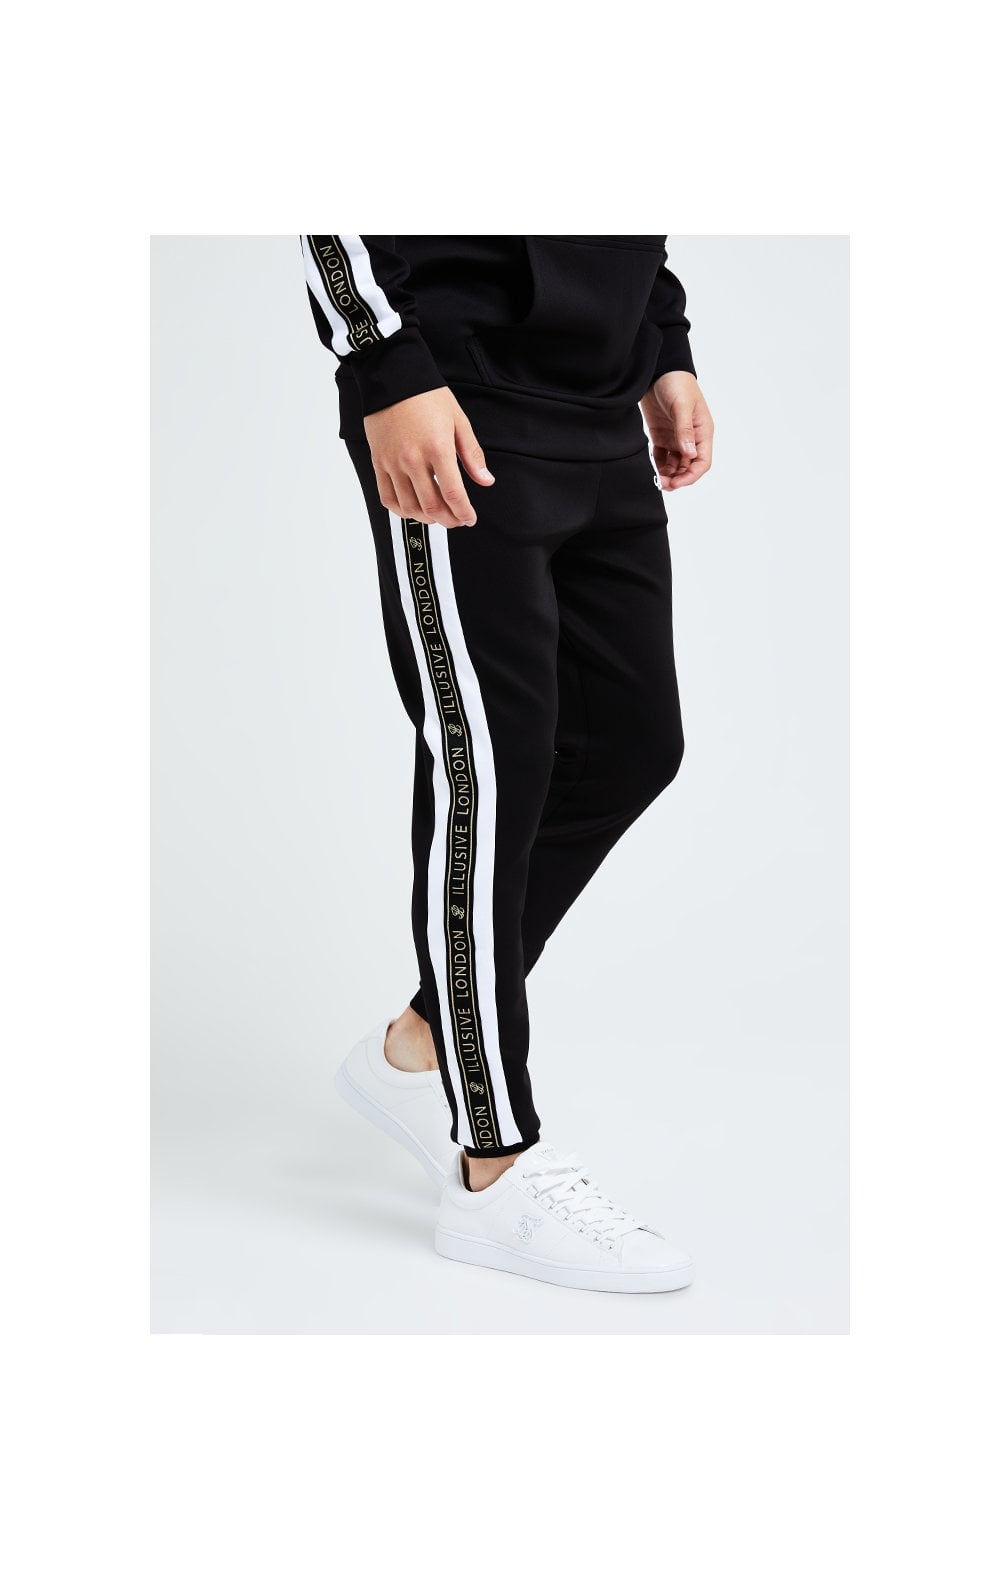 Illusive London Diverge Jogger - Black Gold & White (1)